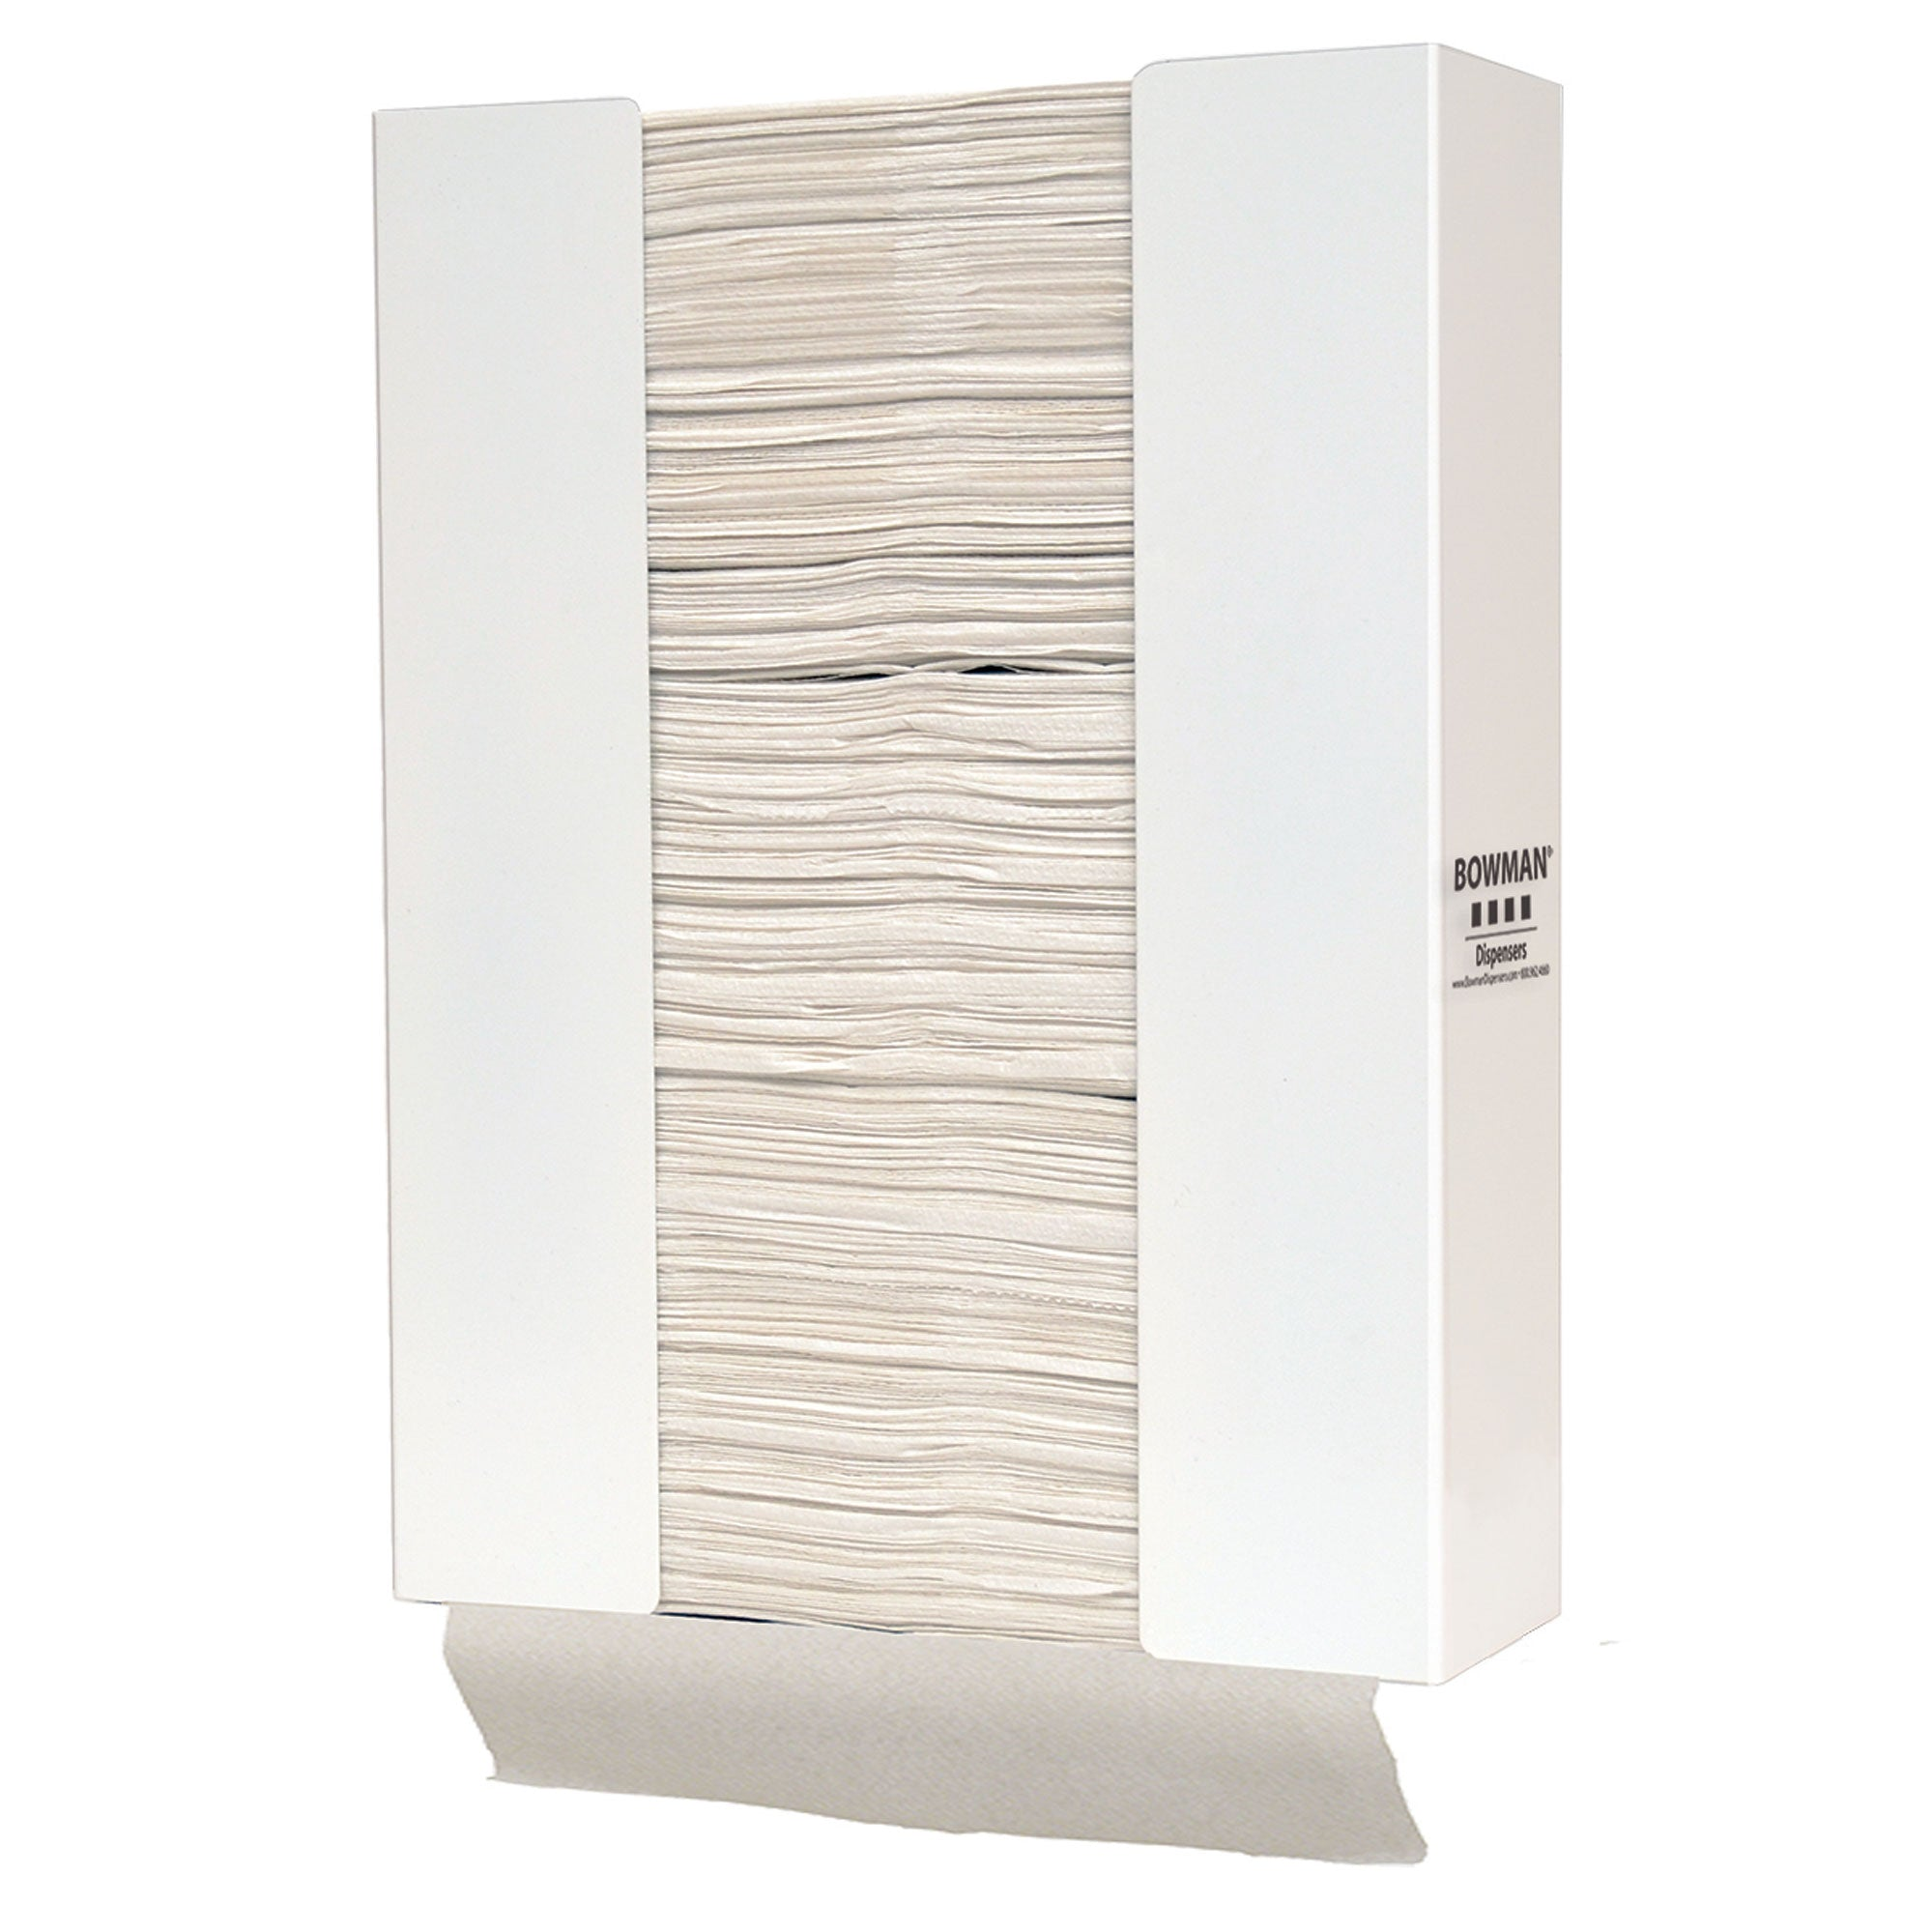 Bowman Steel Wall Mount Paper Towel Dispenser